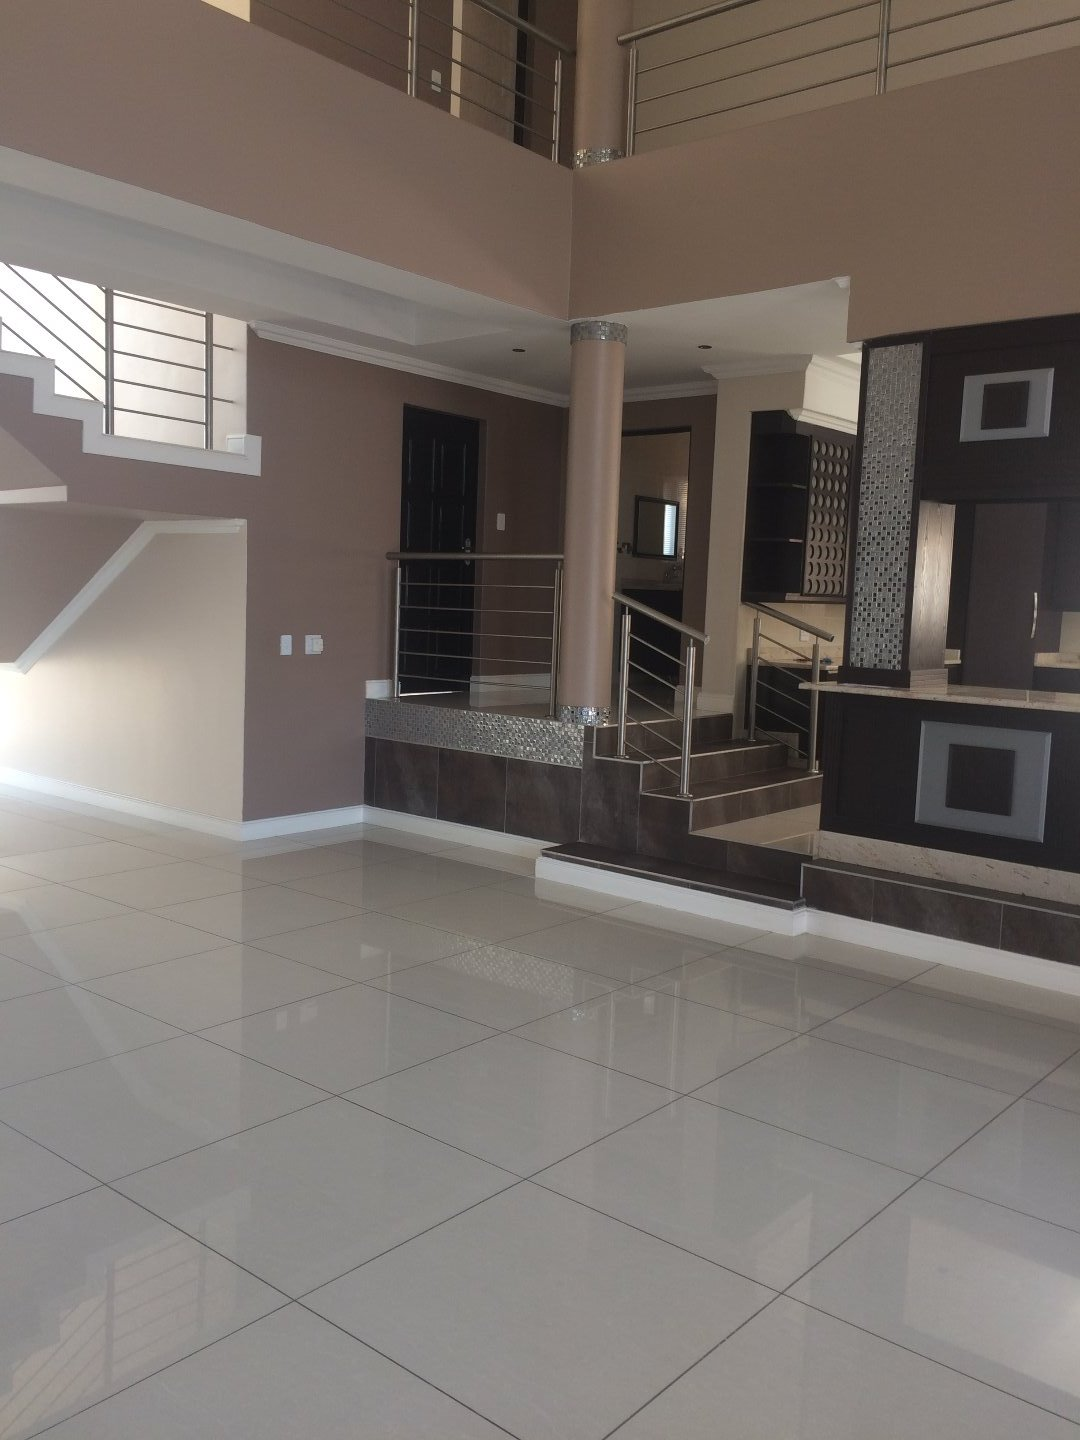 Meyersdal property to rent. Ref No: 13617379. Picture no 4